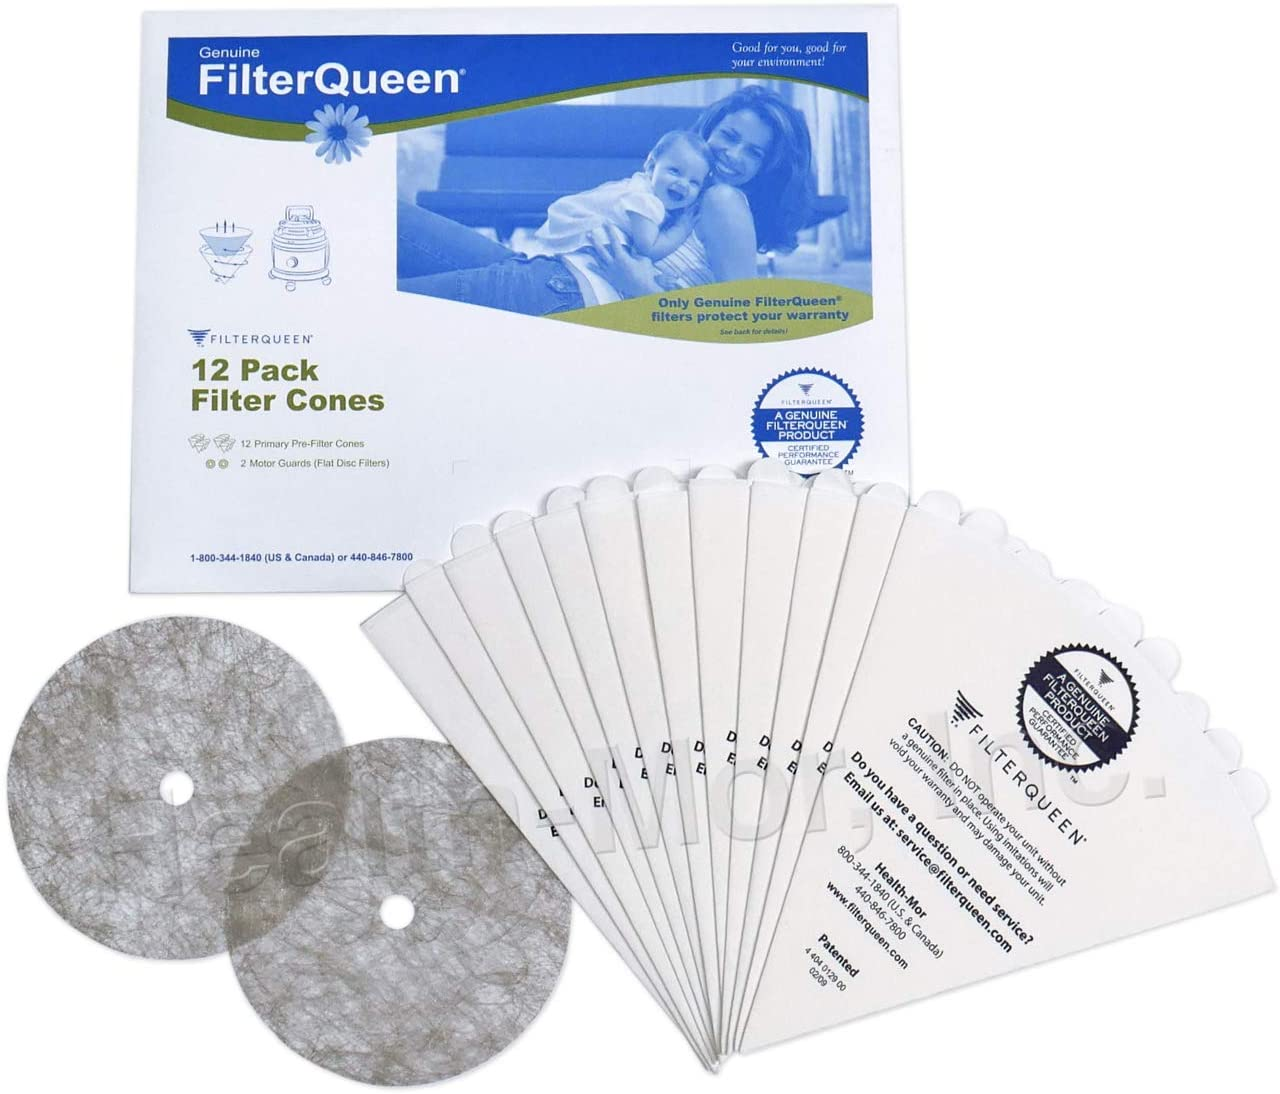 FilterQueen Majestic Cellulose Pre-Filter Cones, 12 Pack